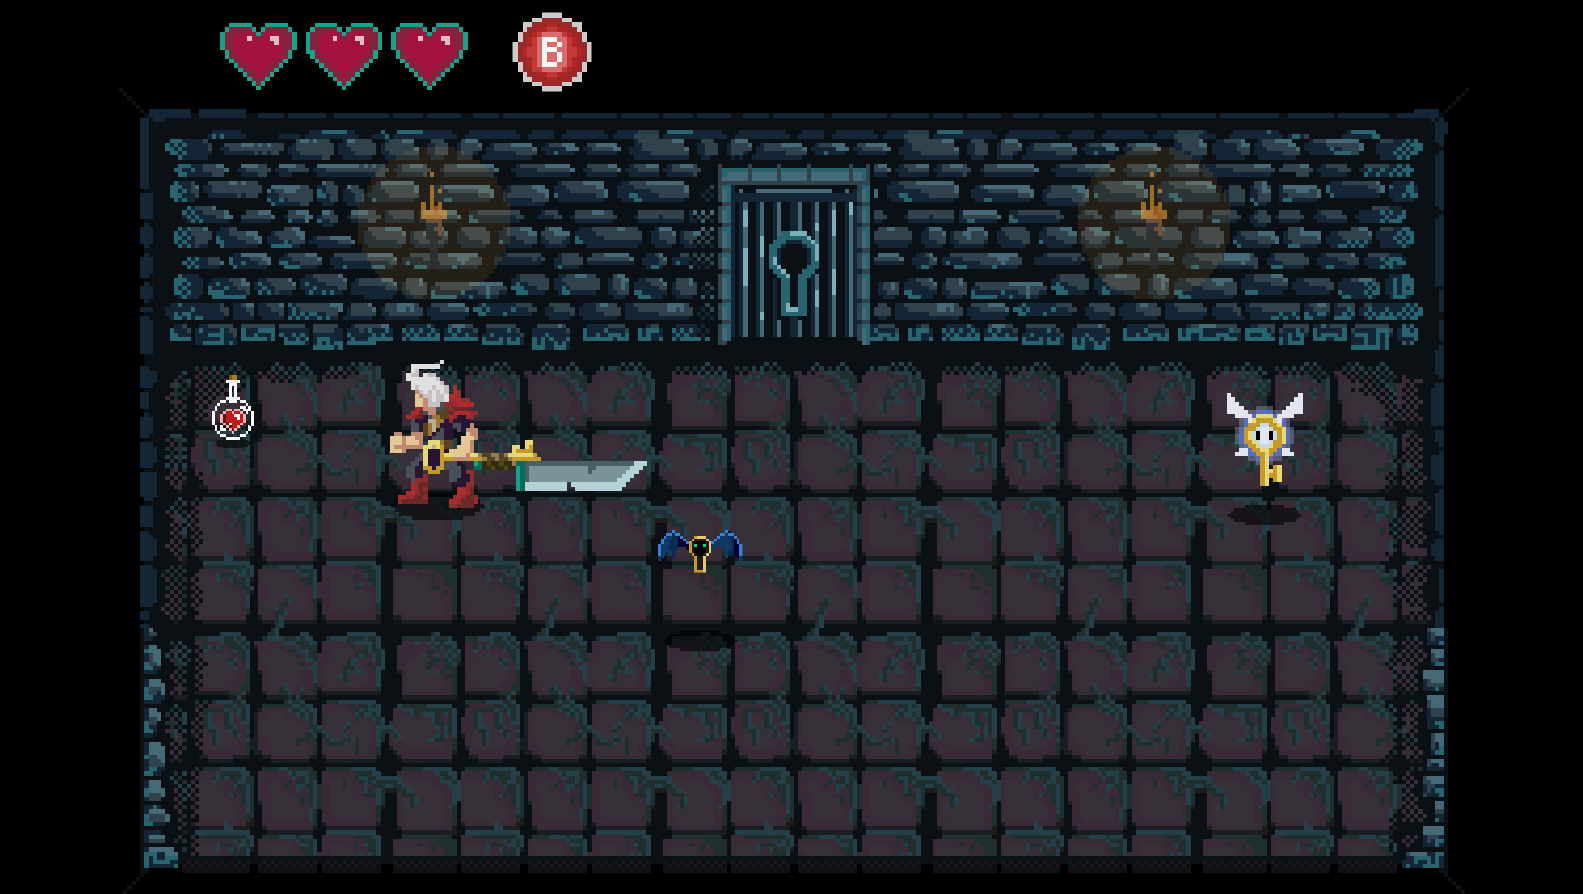 In the top left is a health potion, these are given out rarely to the Player. Since the game was designed for a competition, we wanted people to be able to play our game and still feel the difficulty, while also allowing non-gamers to be able to have the experience as well. A health potion was our answer to this issue.